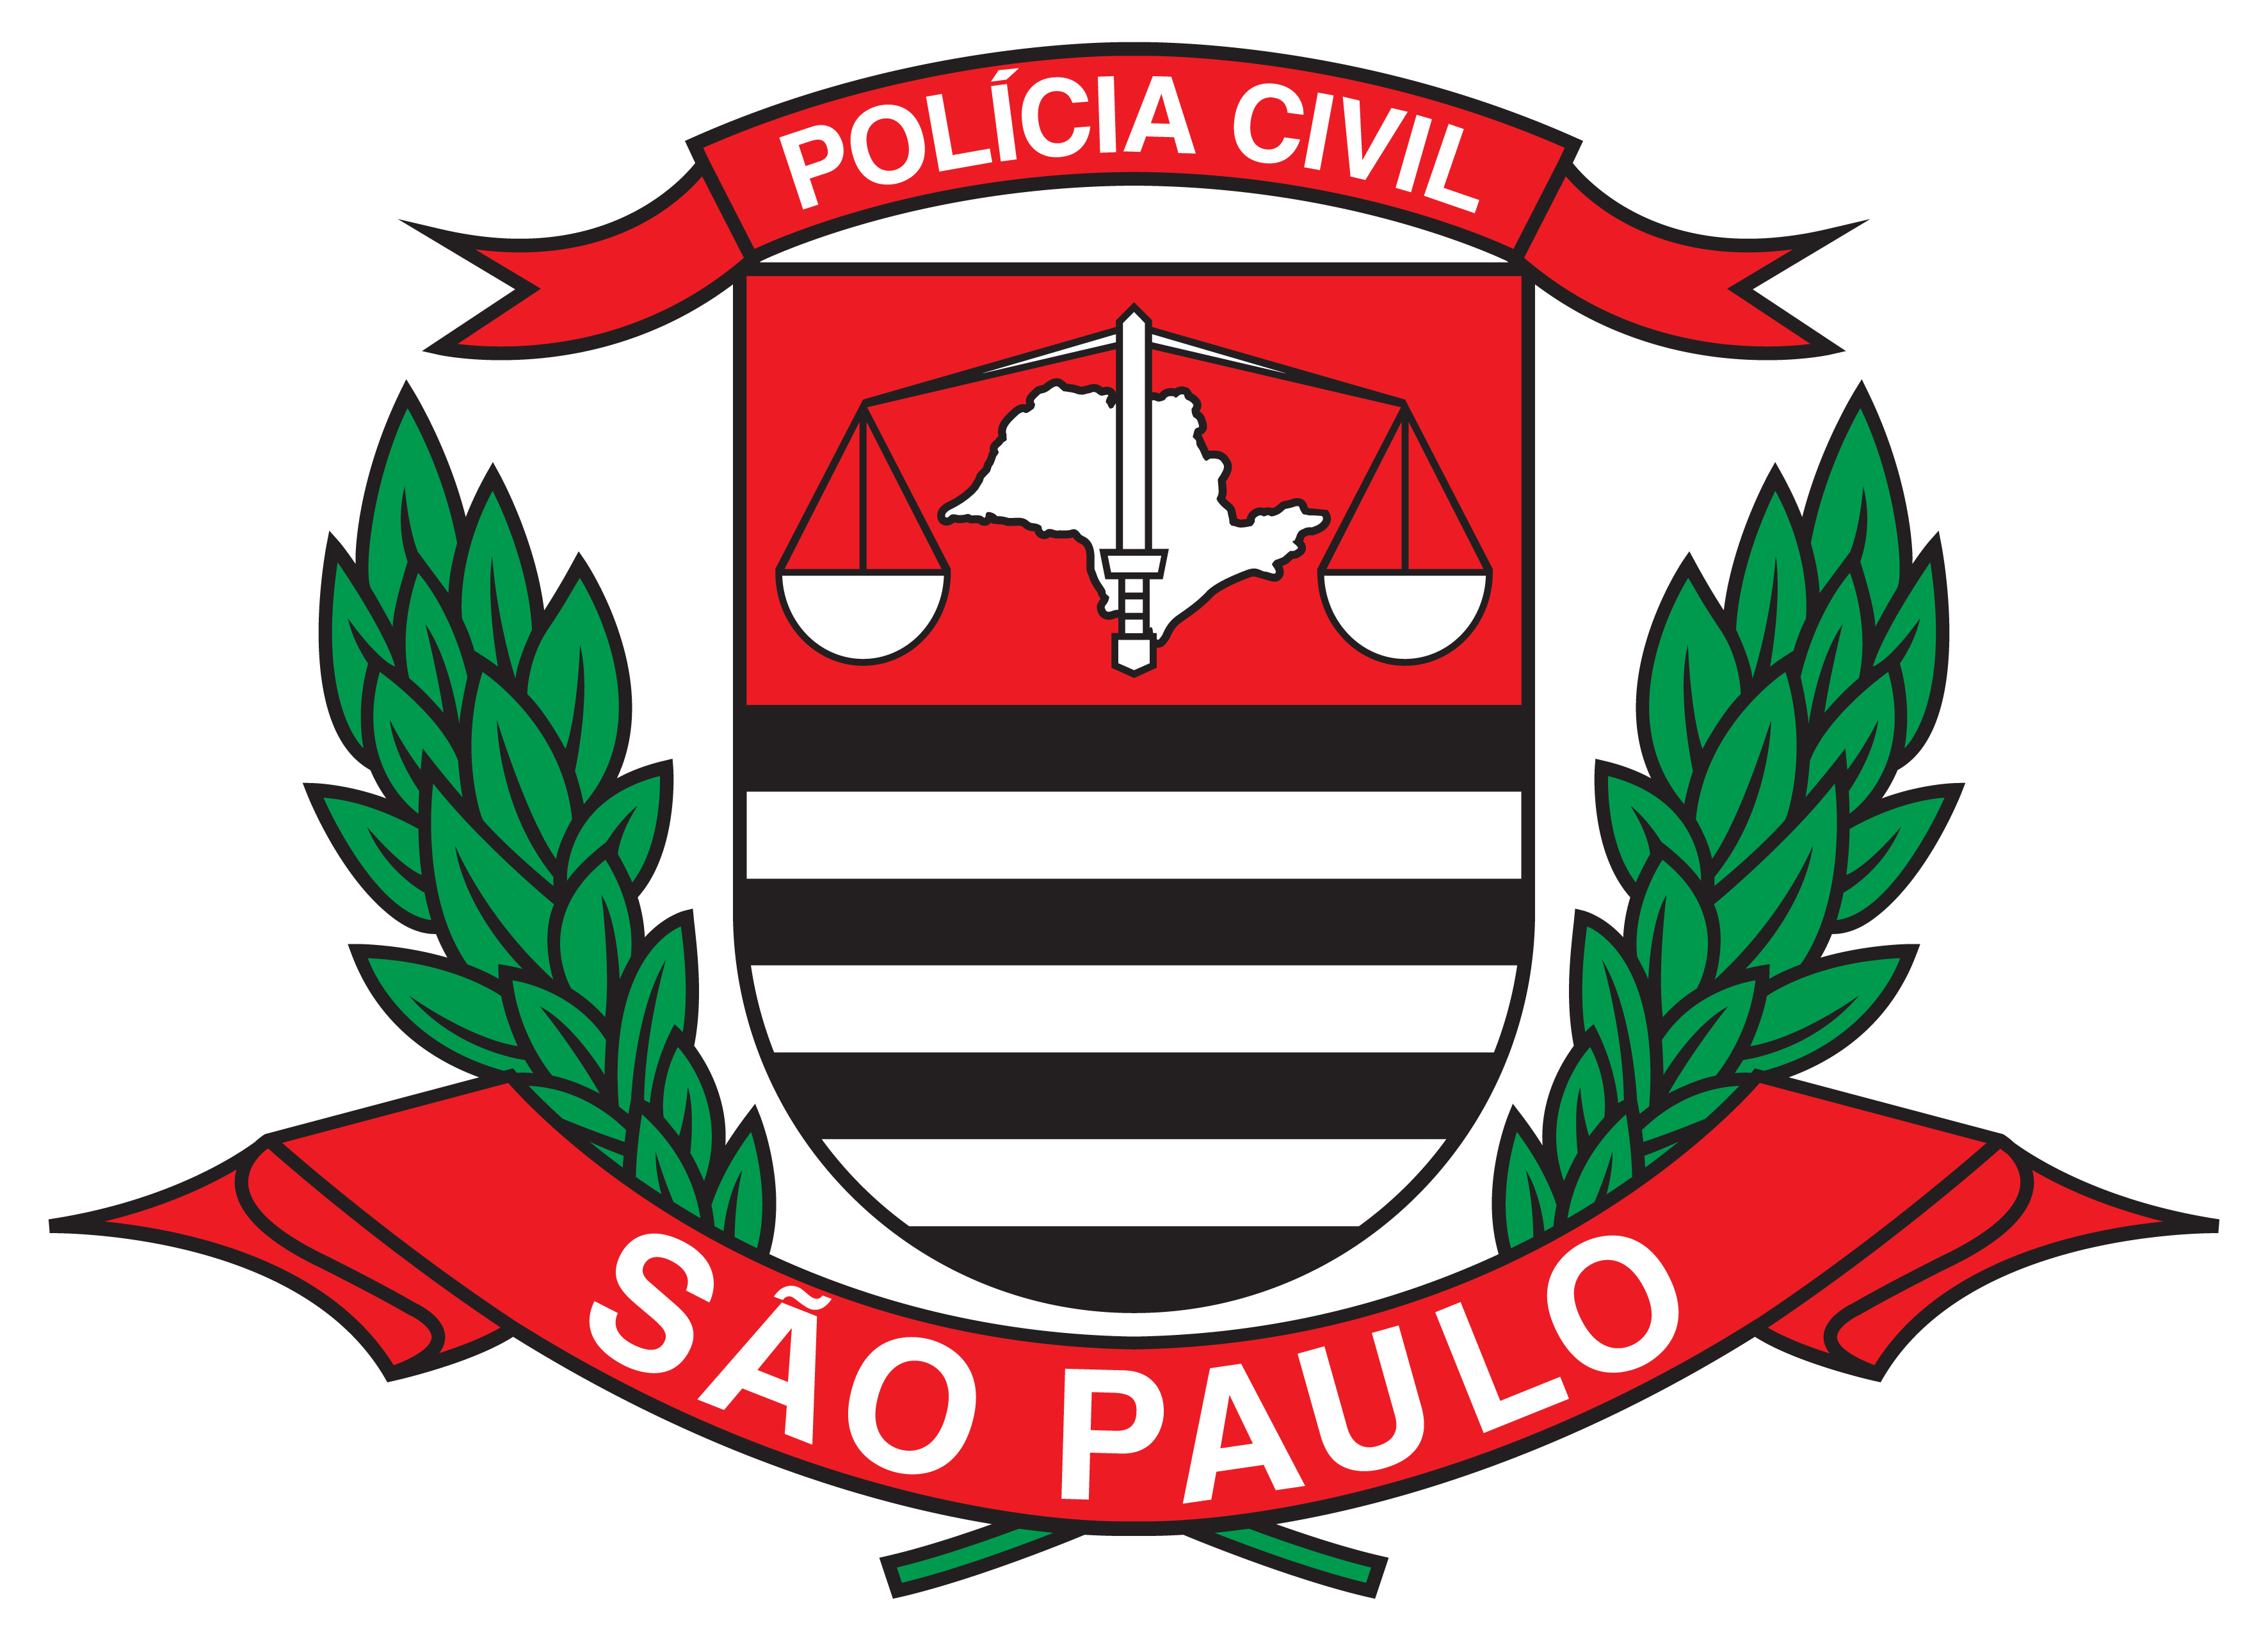 policia_civil_SP_contornada.png